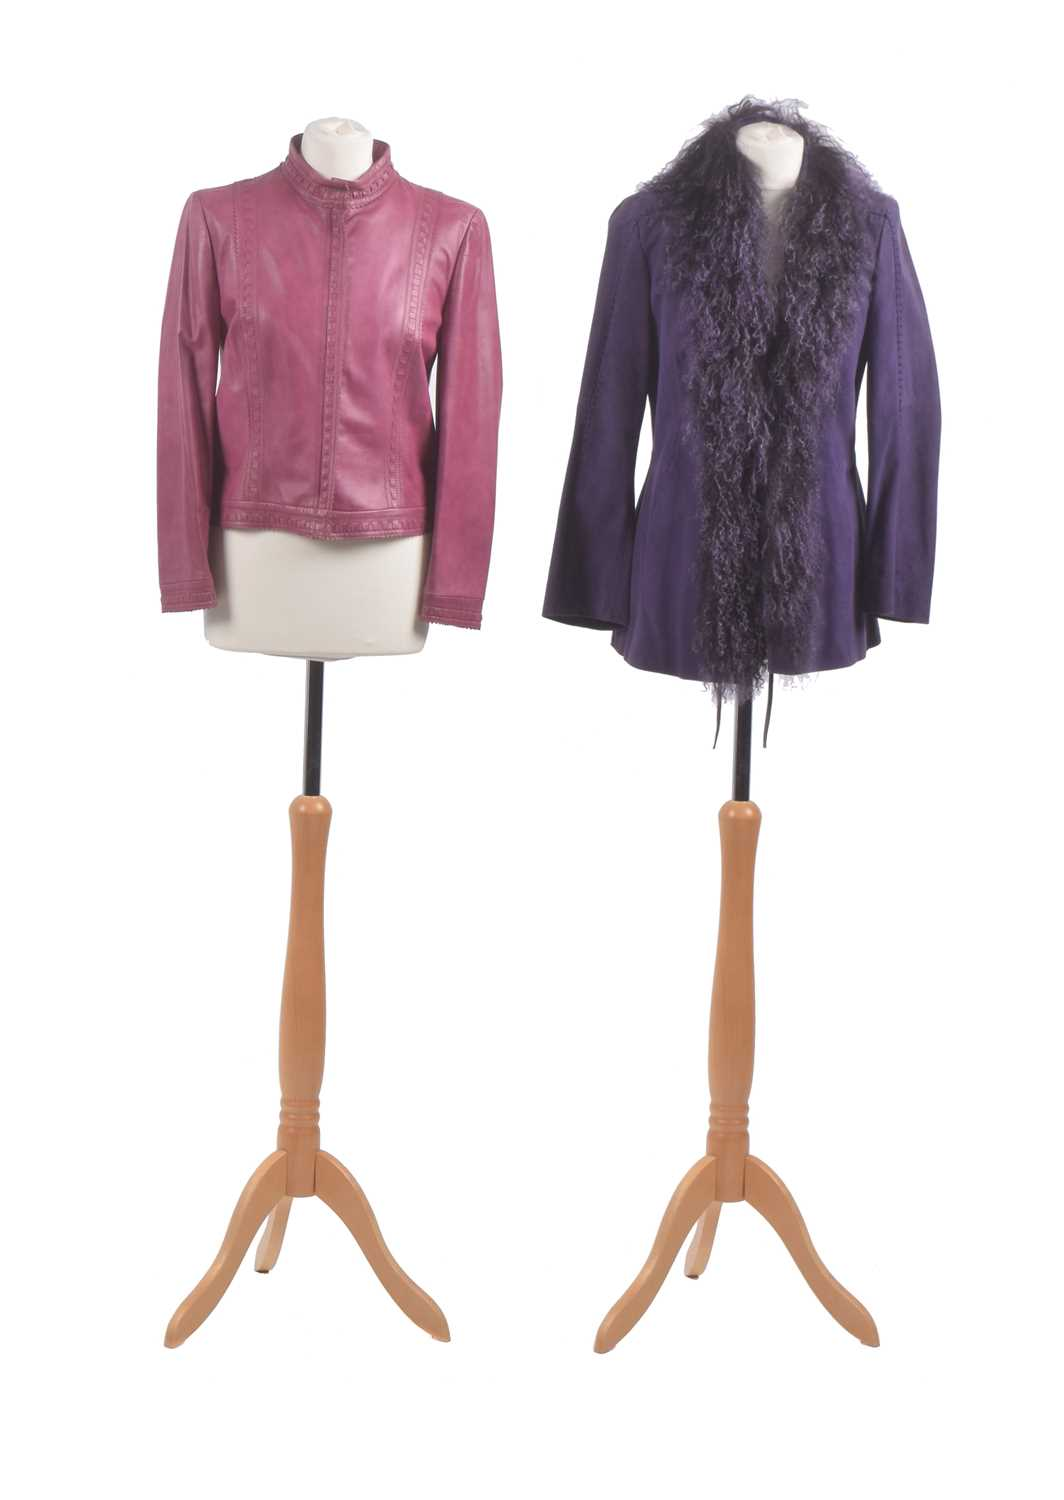 Lot Two jackets by Laurel